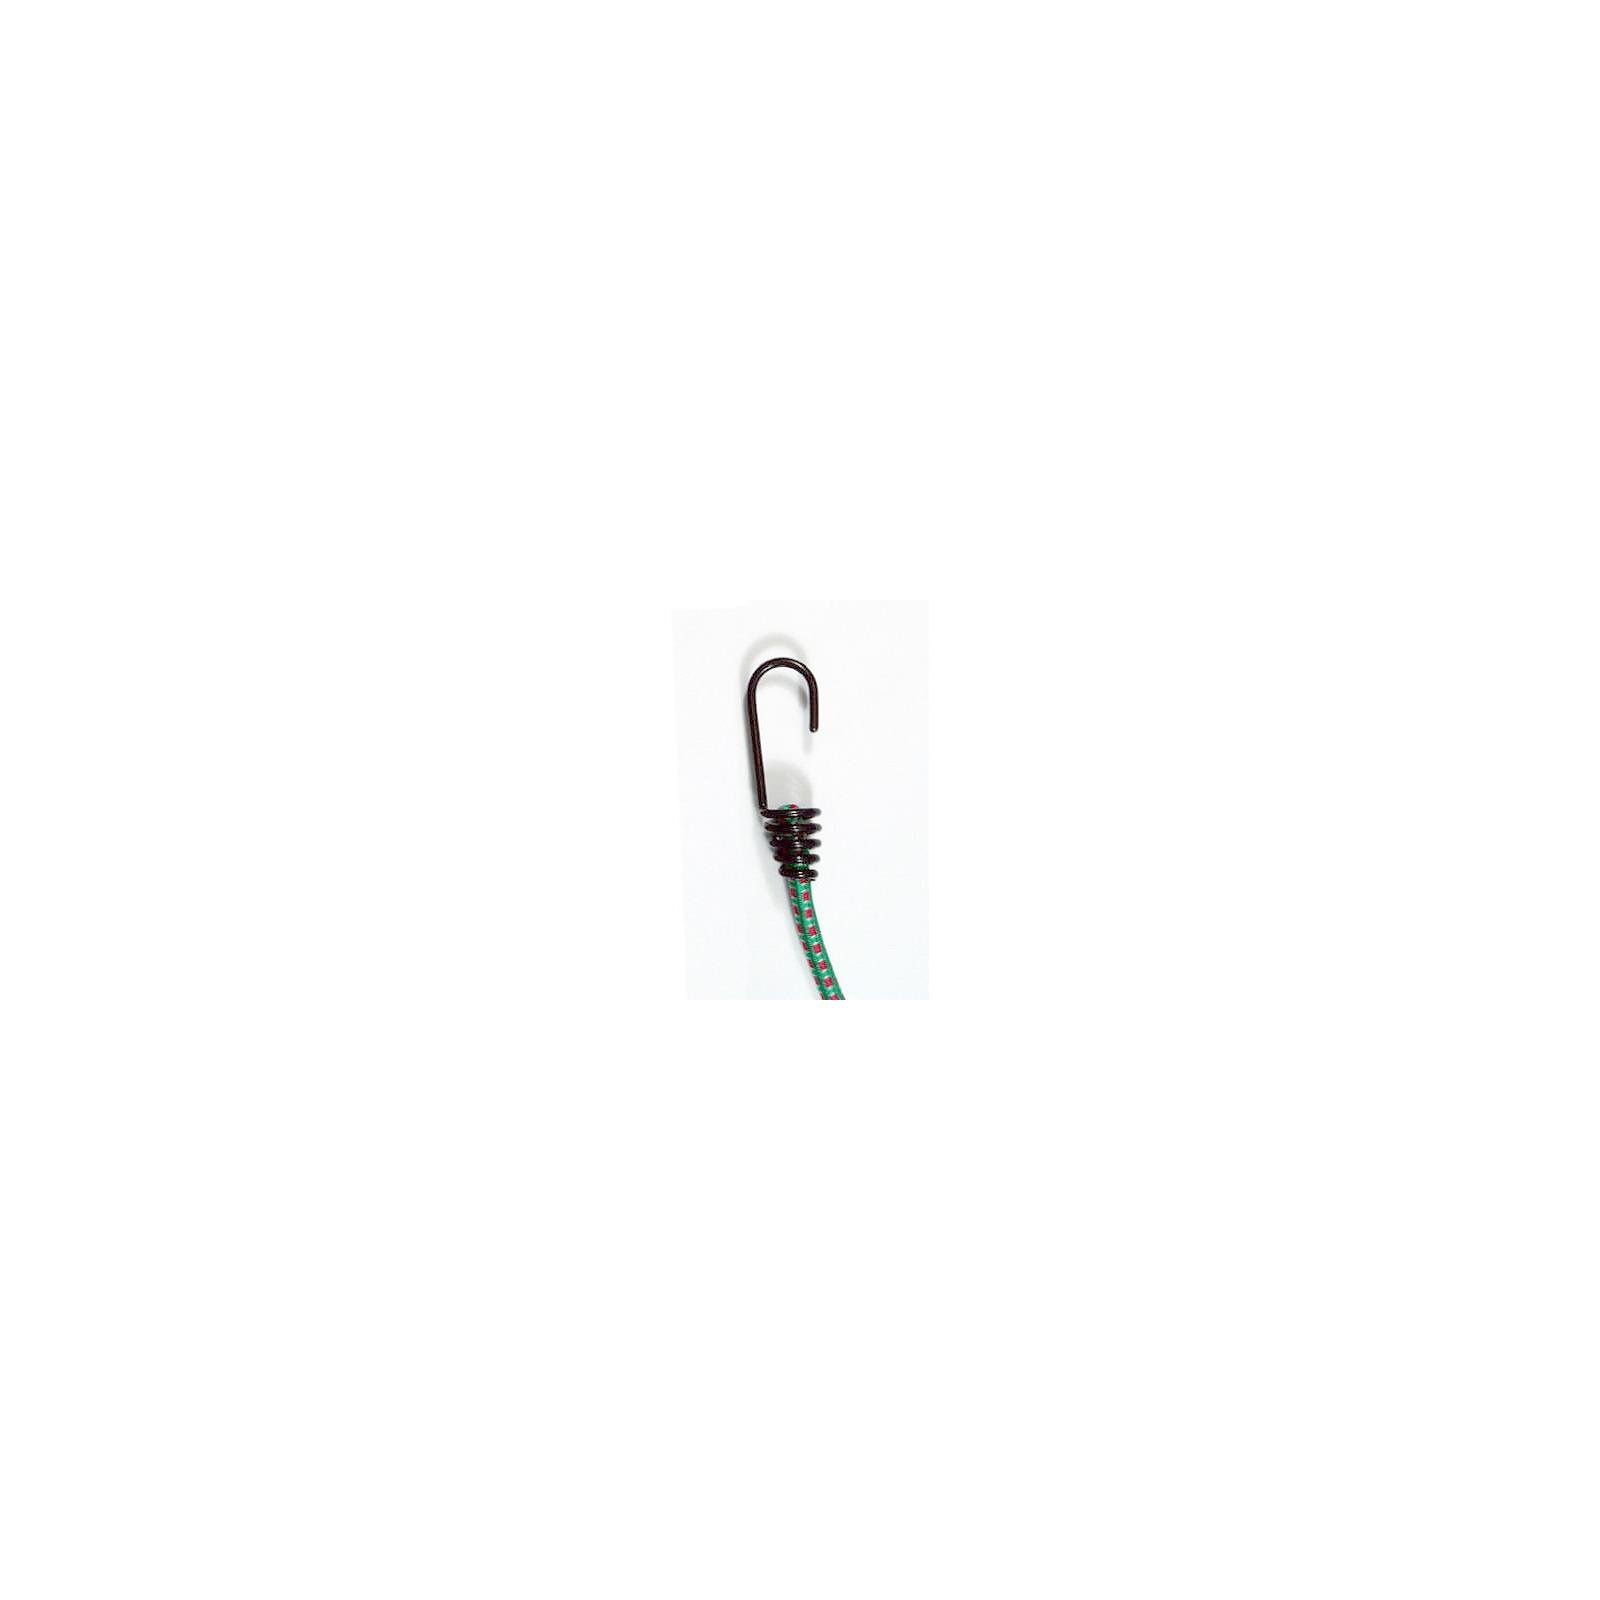 Max MM29 13-Inch Bungee Cord - Quantity 100 by max co ltd